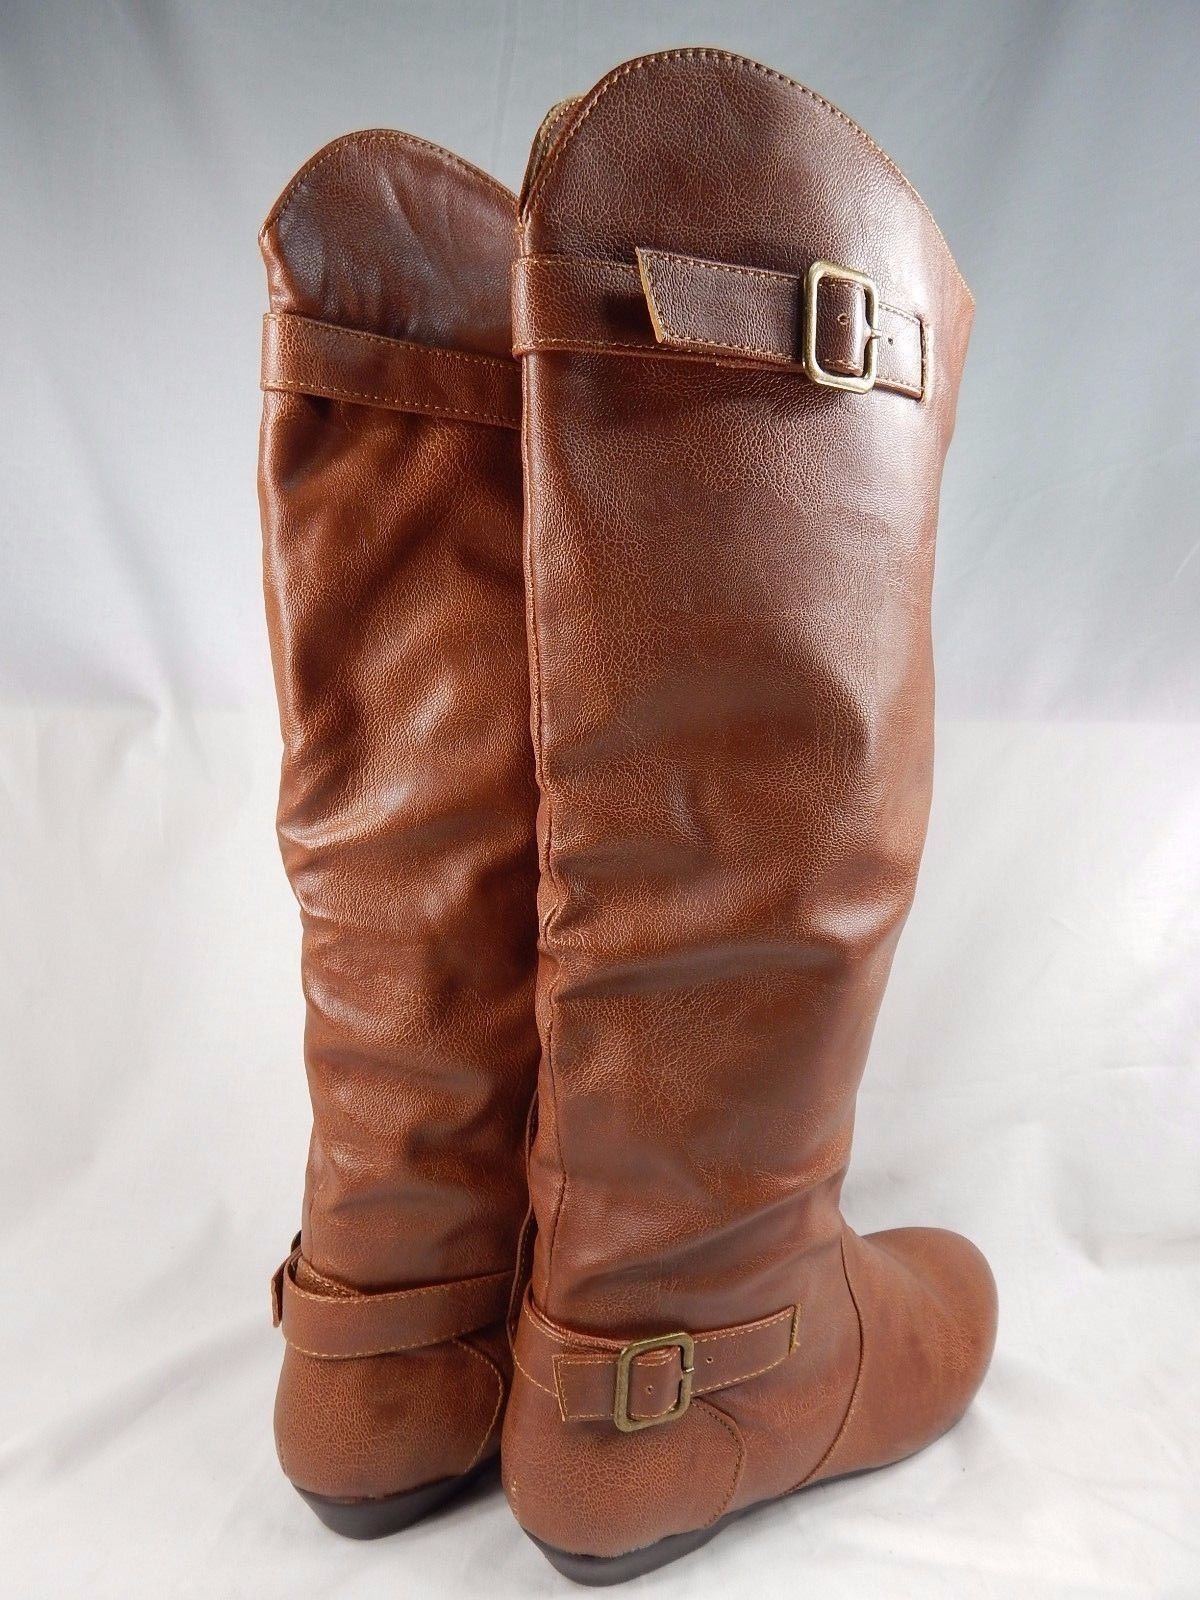 MISMATCH Chinese Laundry Nice Shot Knee High Boots Women Sz US RIGHT 7 LEFT 7.5